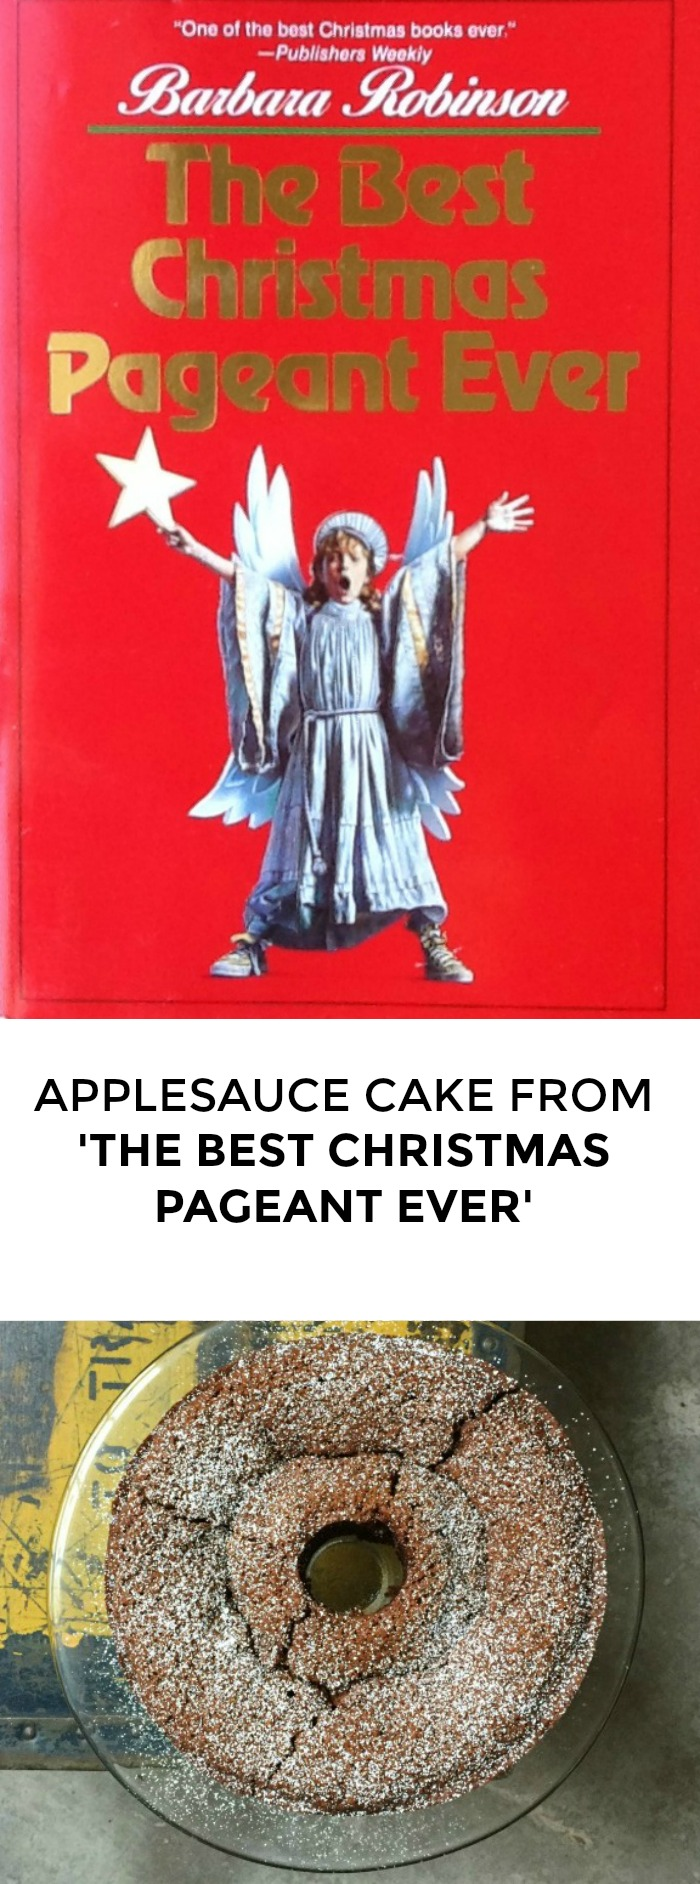 Looking for a Christmas recipe from 'The Best Christmas Pageant Ever'? Click through for a great holiday recipe for applesauce cake!